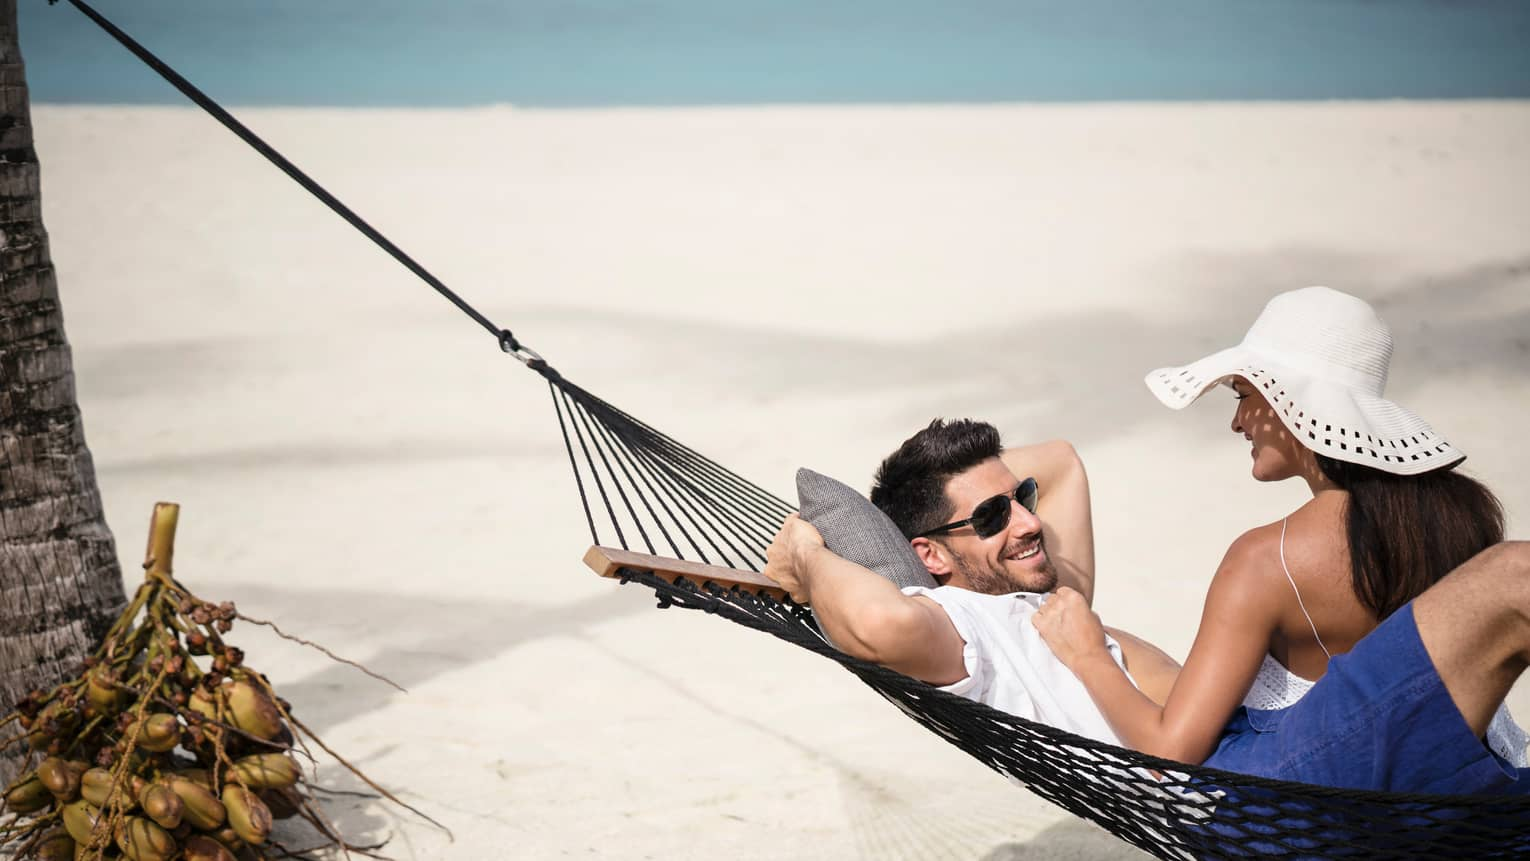 Sand beach, woman wearing sunhat sits on edge of hammock where smiling man relaxes